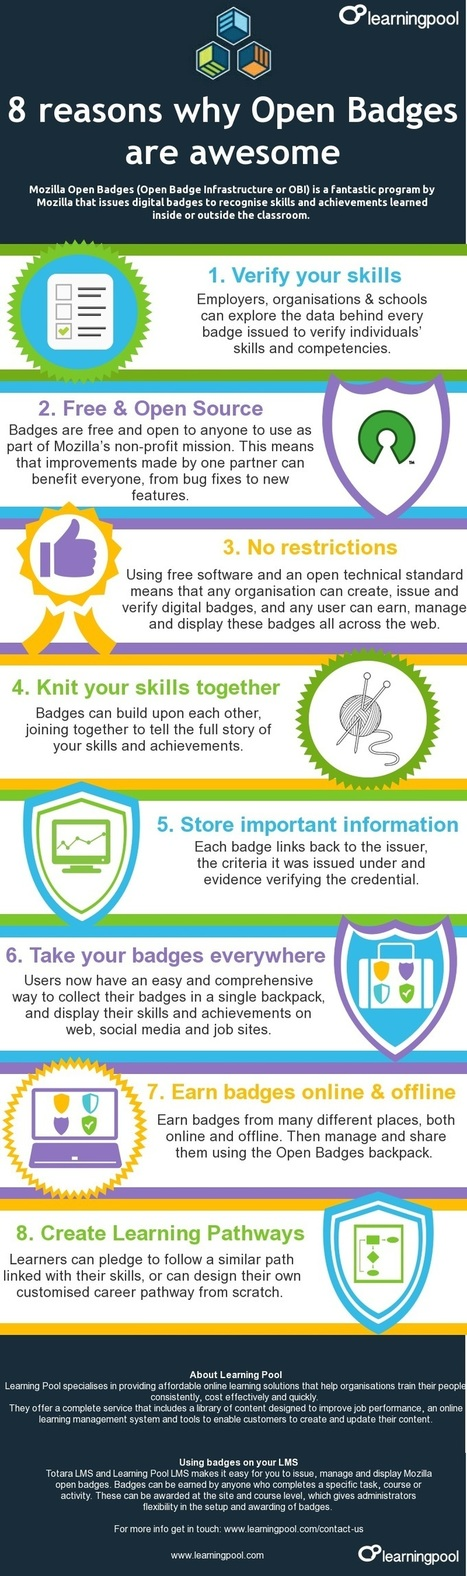 8 Reasons Why Open Badges Are Awesome | SoHo Int Technology046 | Scoop.it